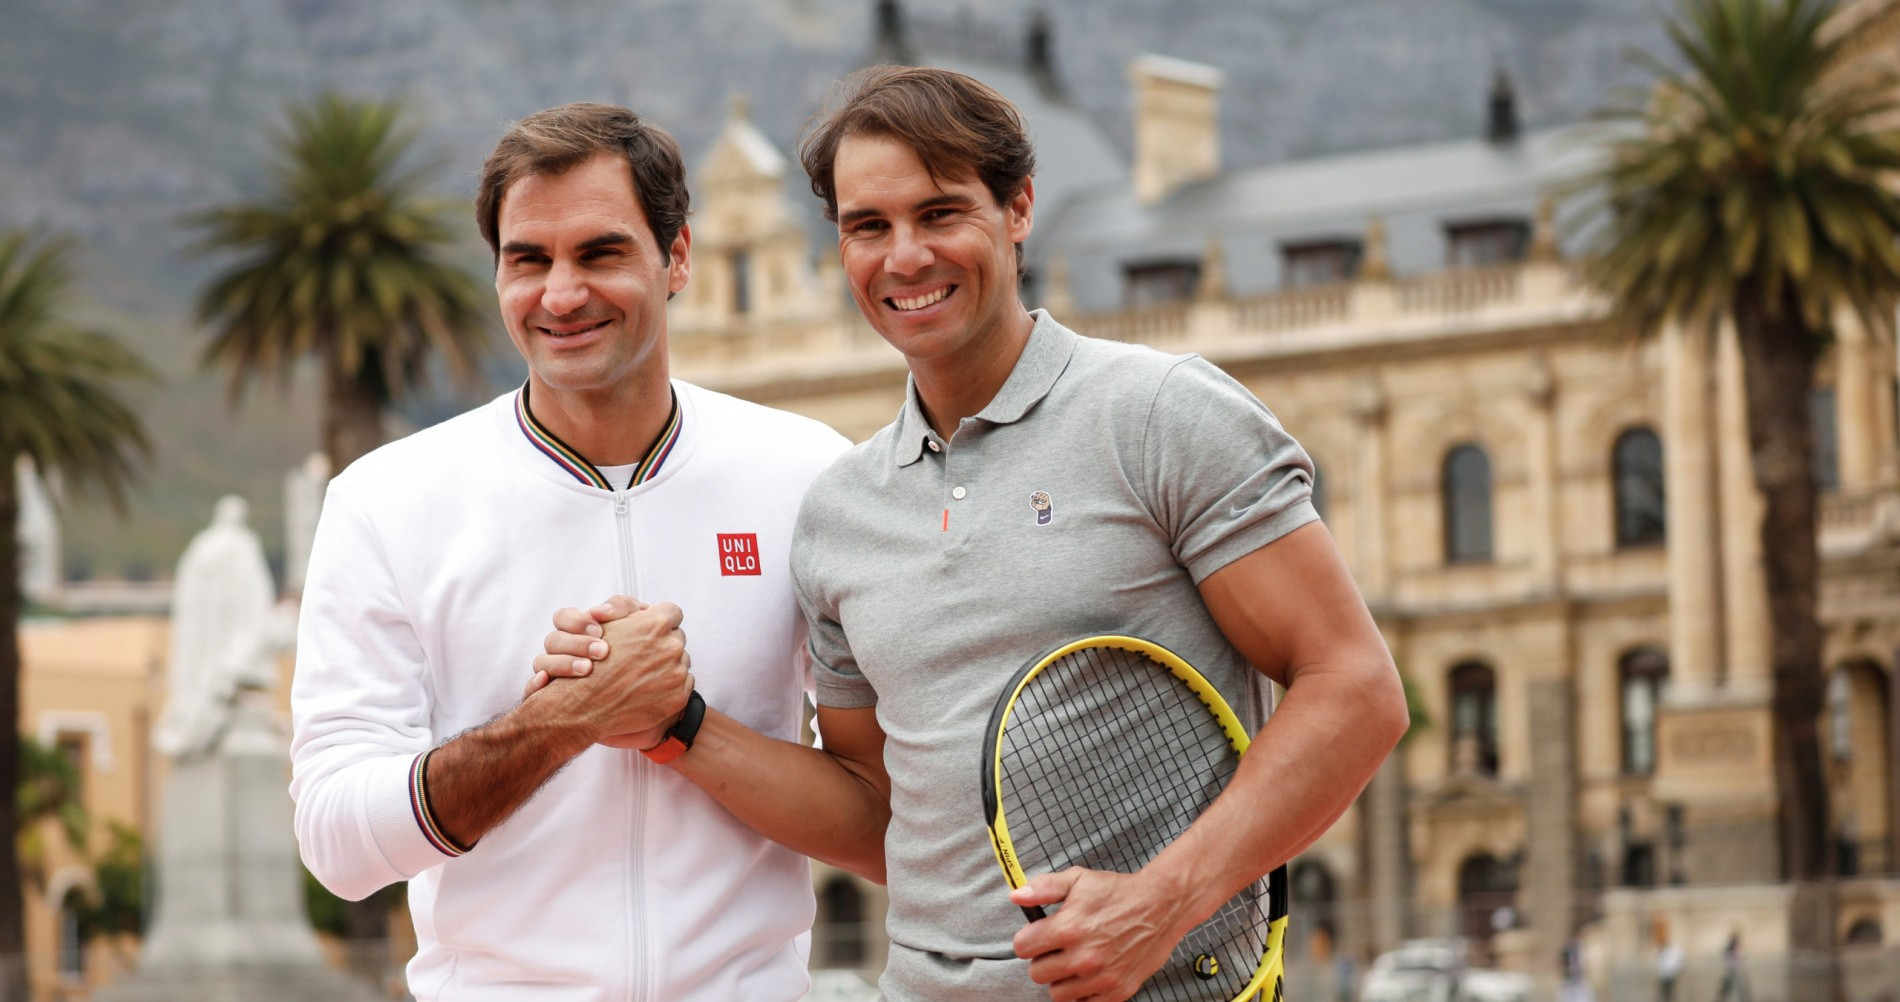 Roger Federer and Rafael Nadal in Cape Town, South Africa, February 2020, the Match in Africa